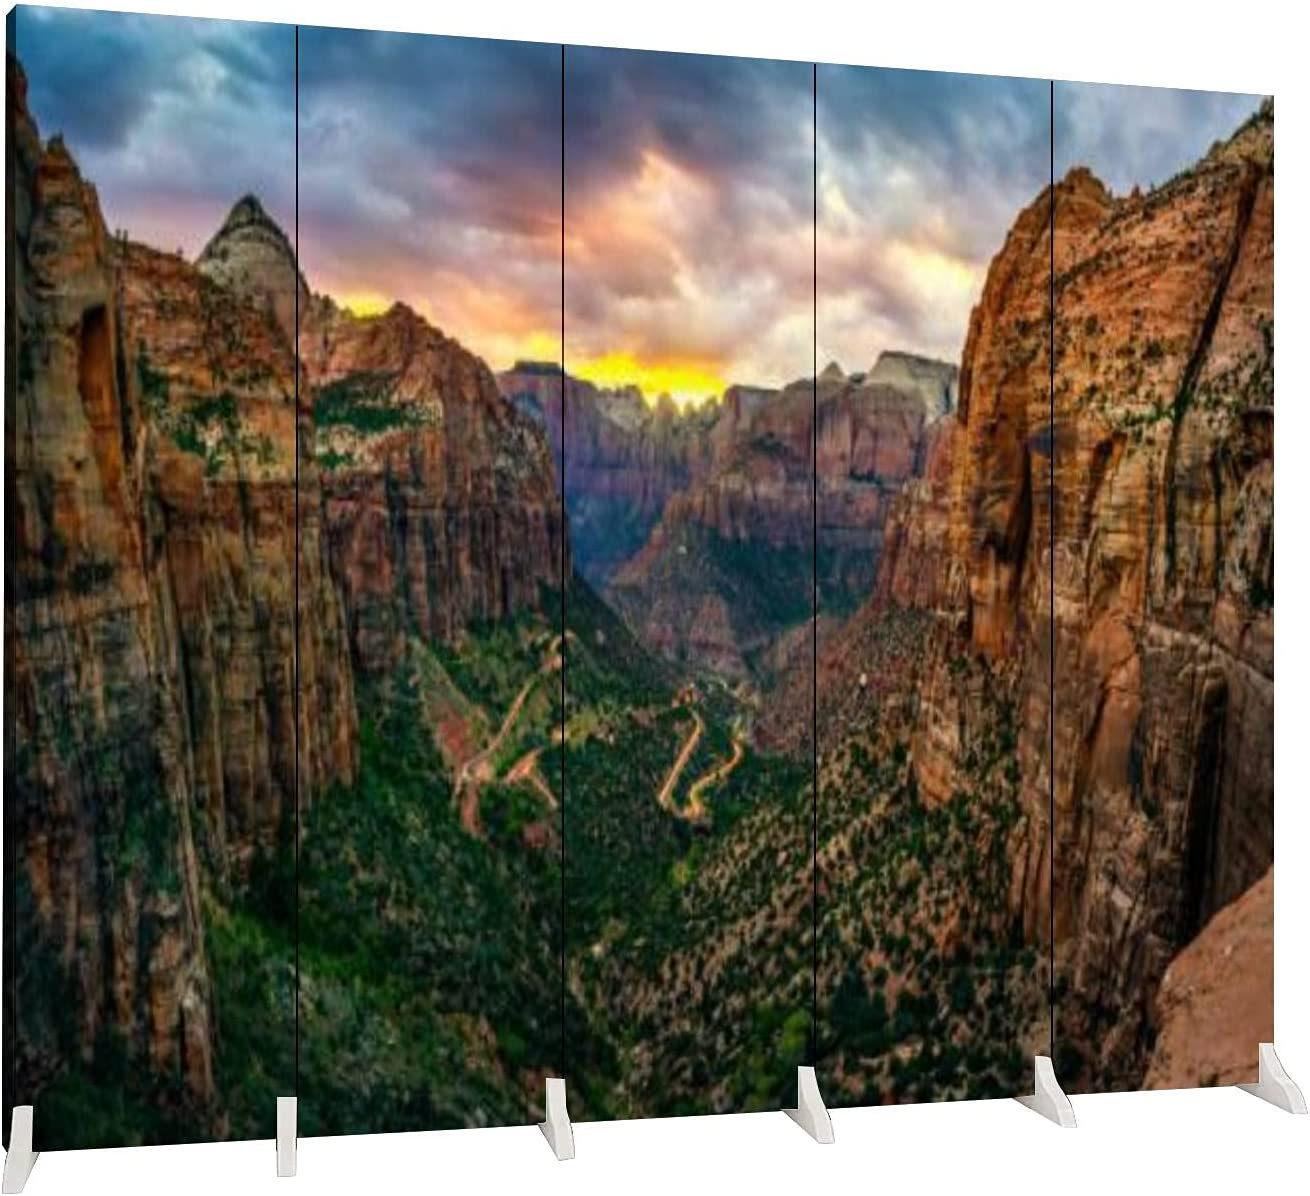 Dola-Dola 5 Panel Ranking TOP11 Screen Room Divider Courier shipping free shipping Zion Panoramic View Nat of